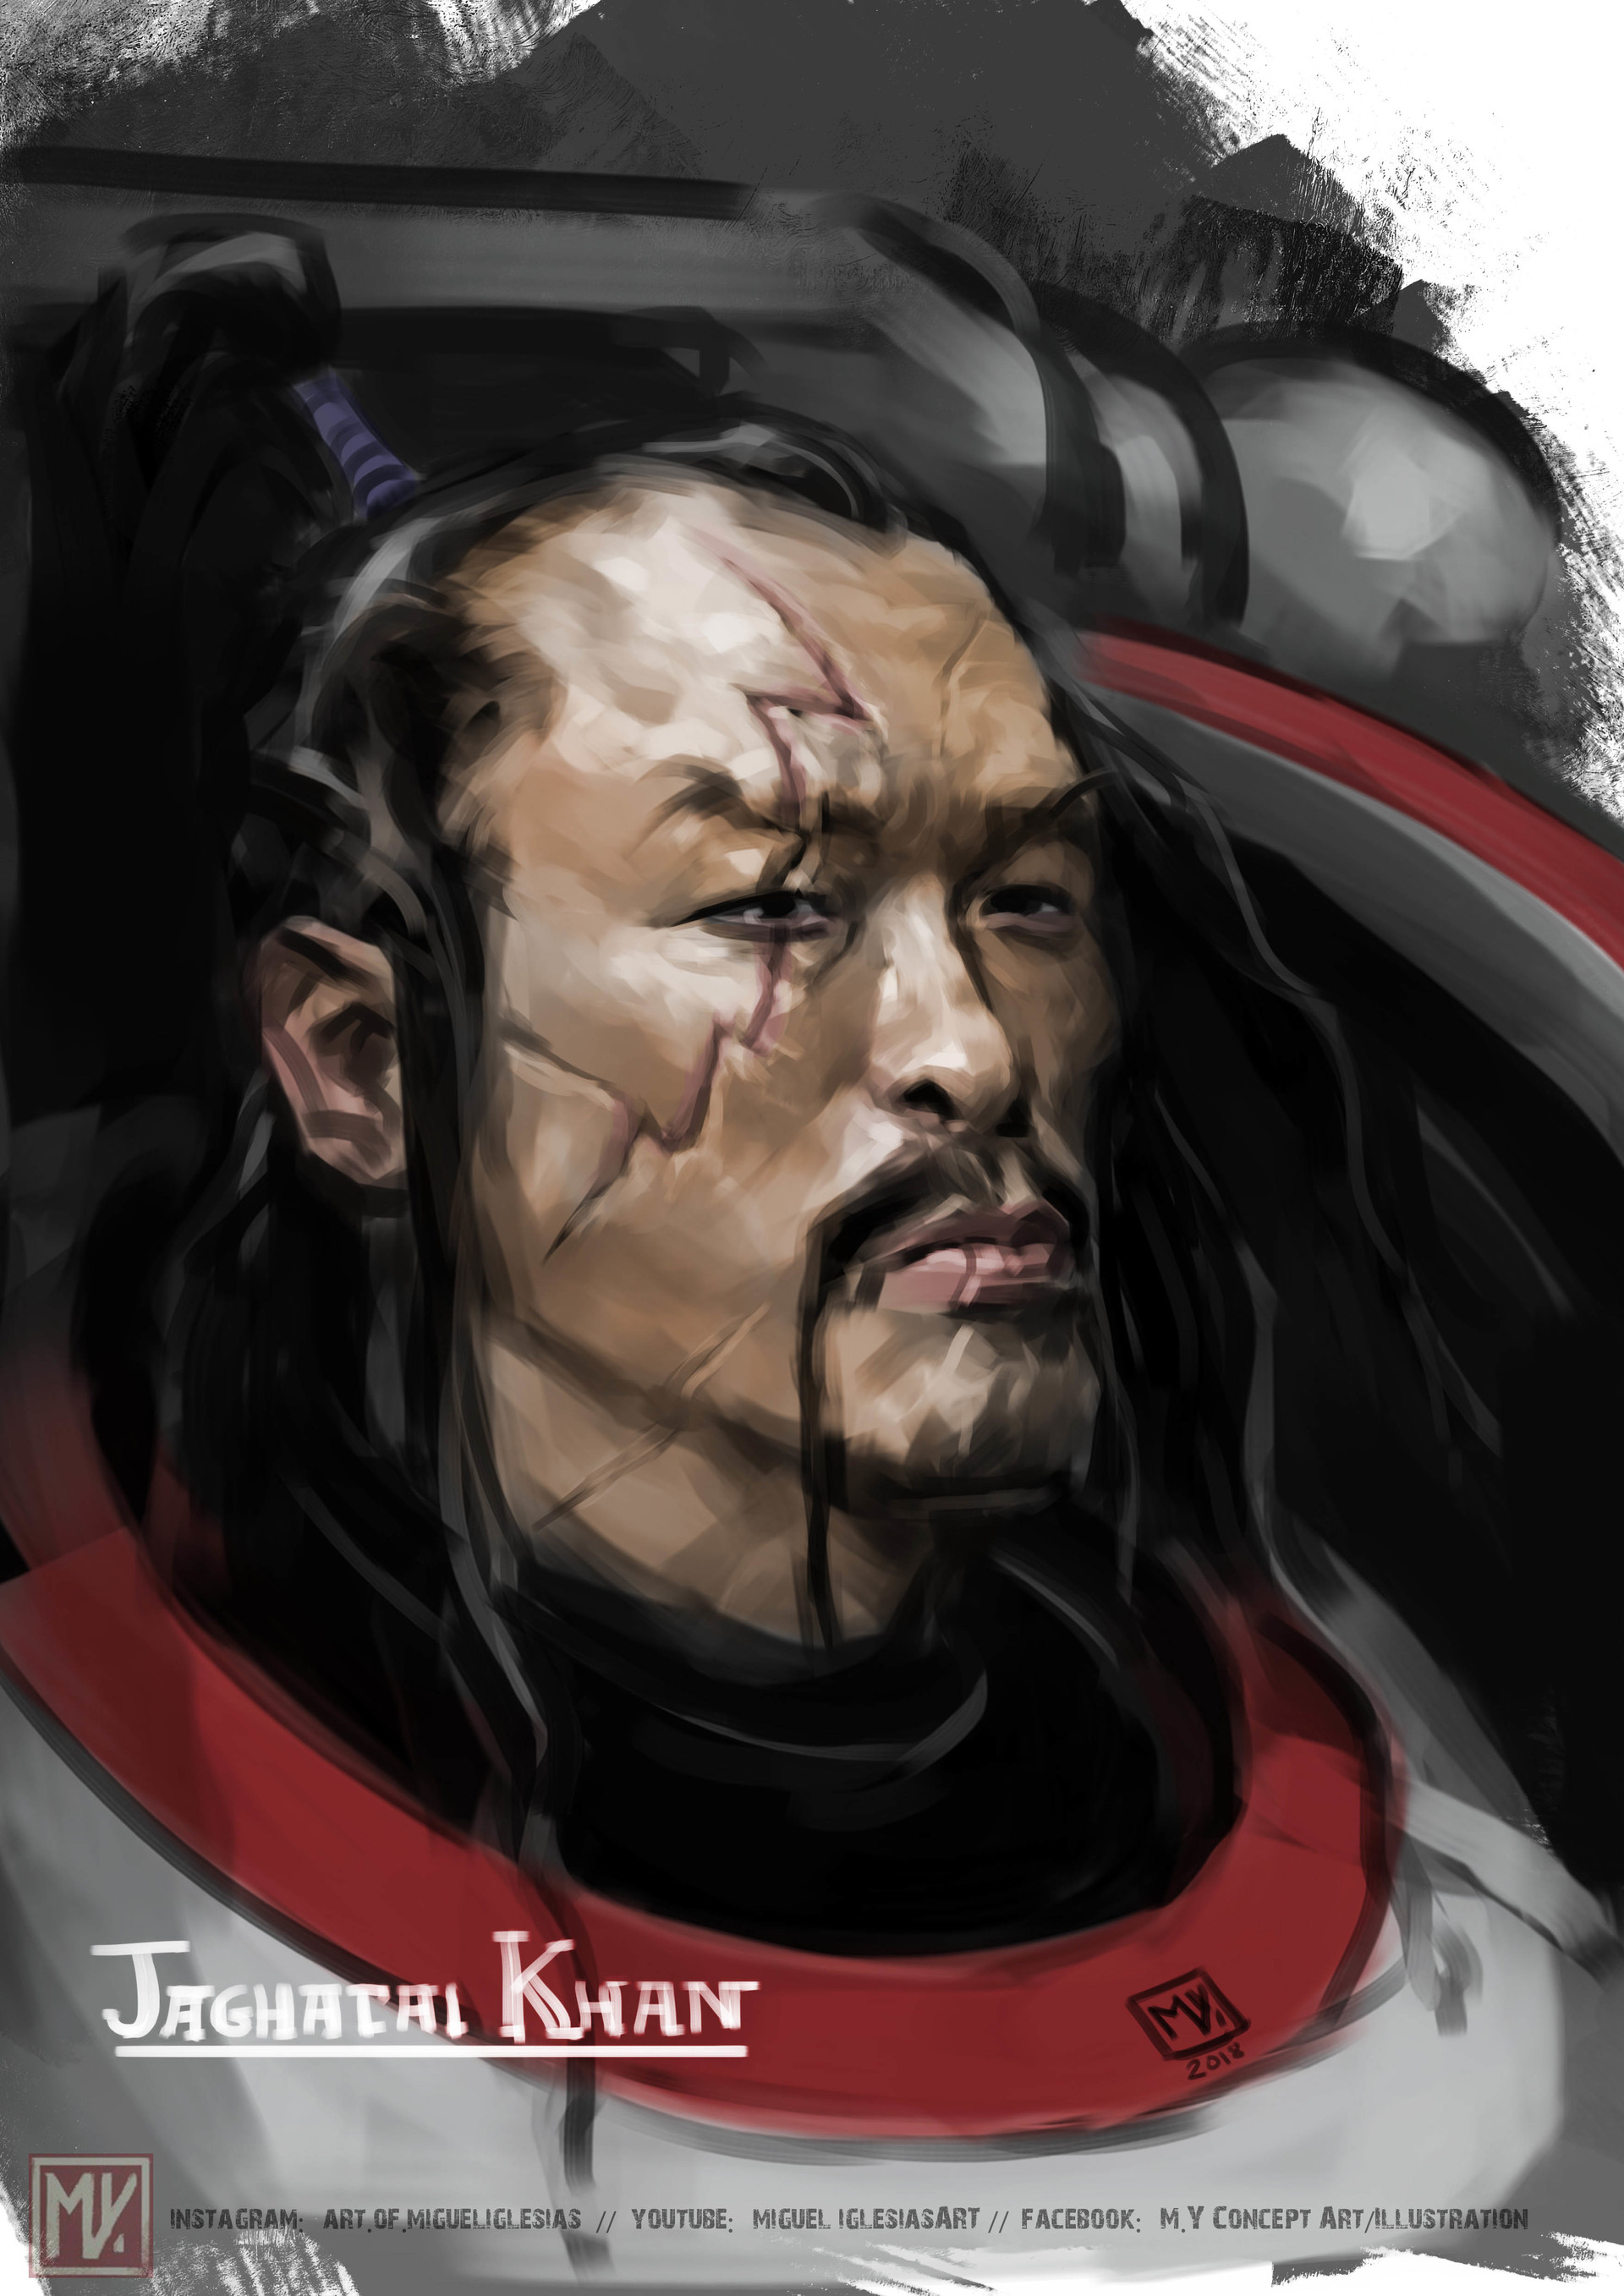 5 - wh3lebO - Jaghatai Khan, Primarch of the White Scars